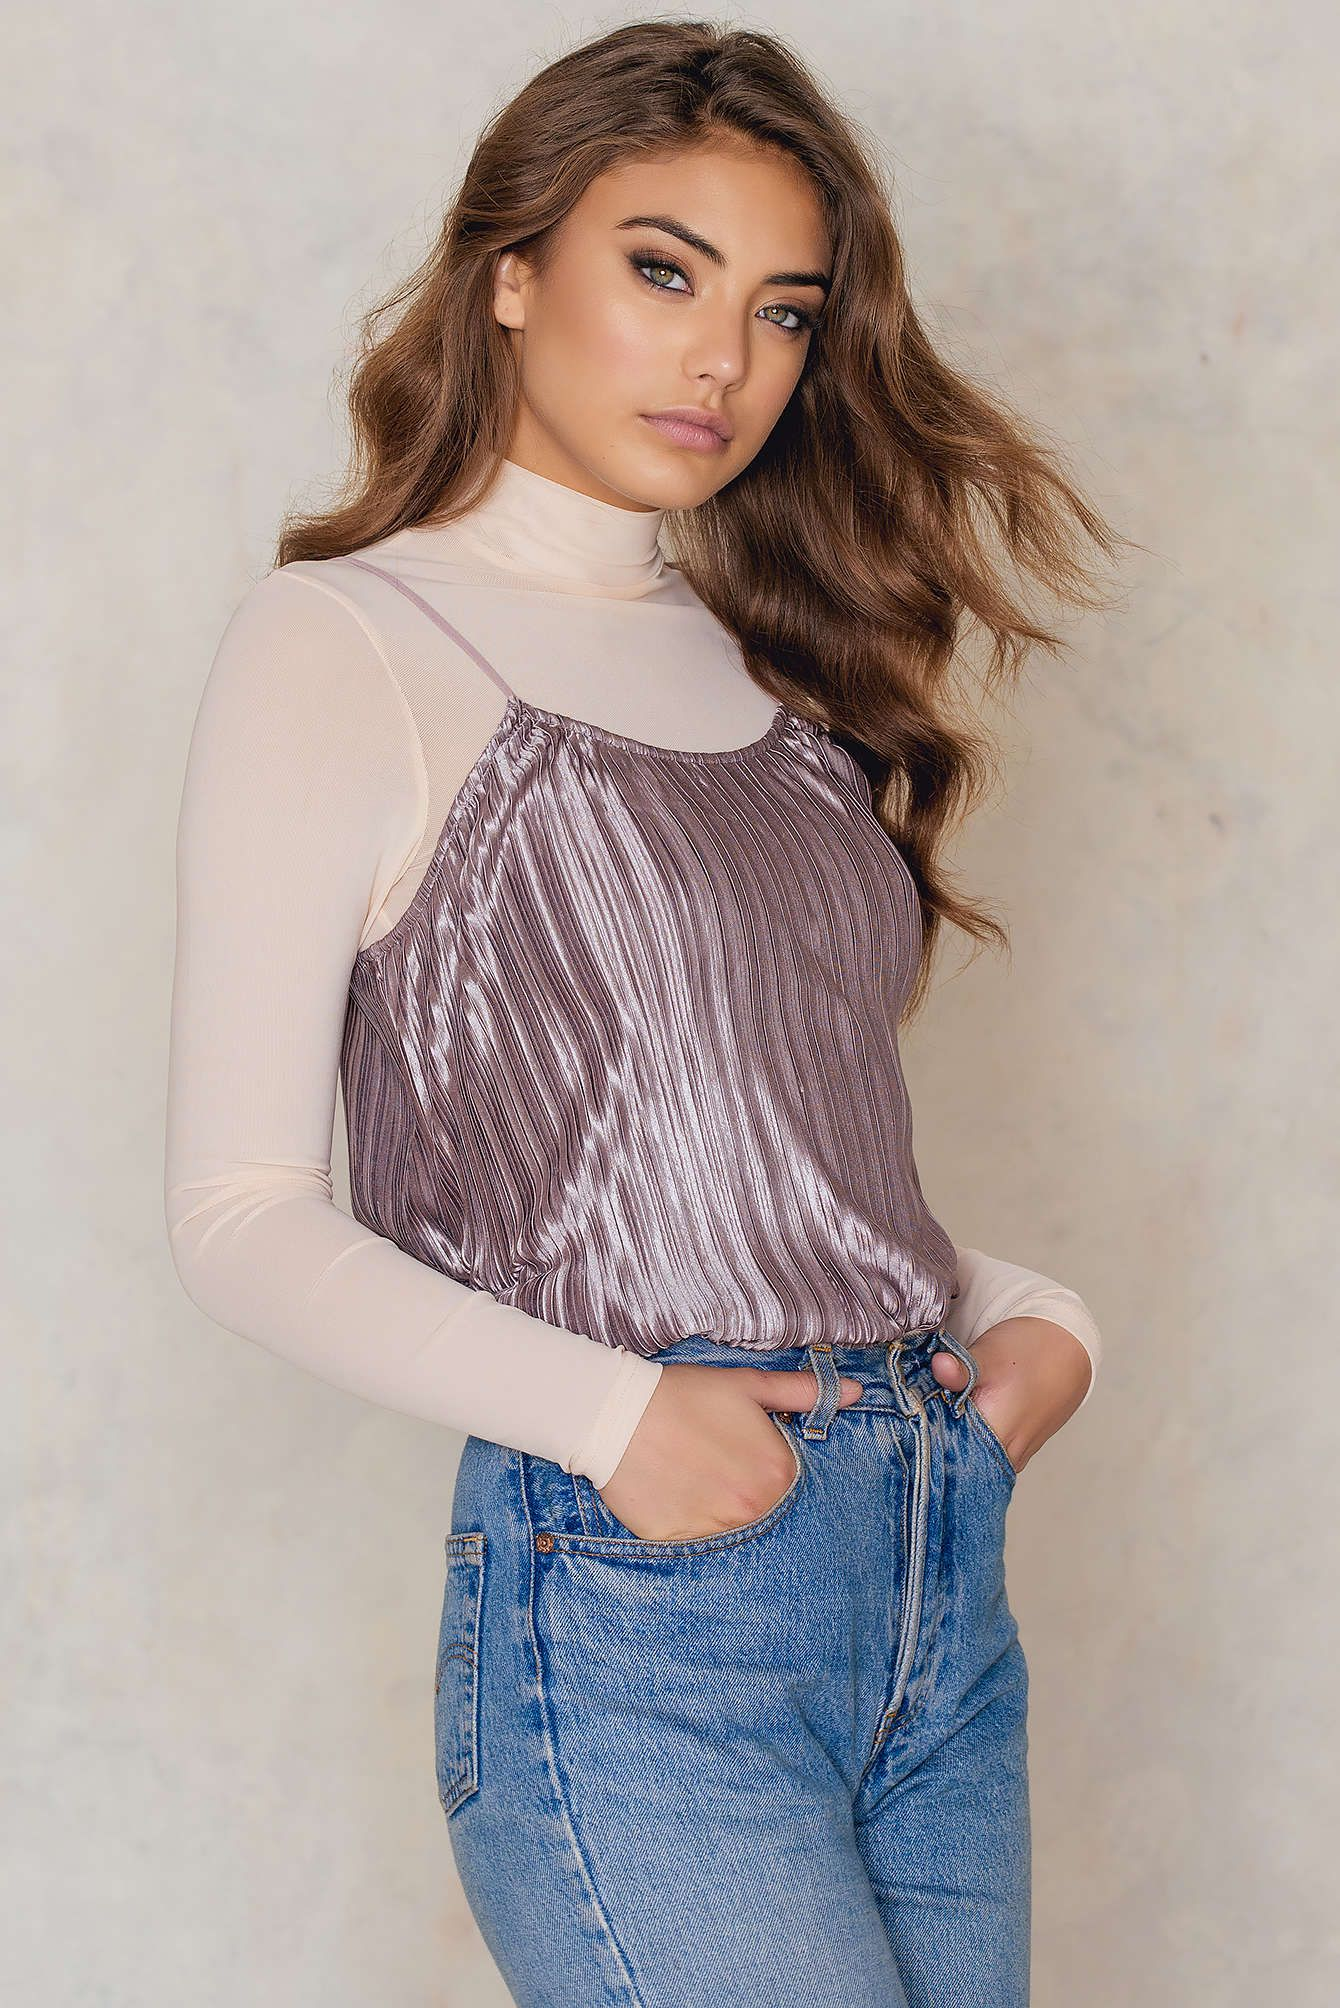 Shine bright like a diamond in this beauty! The Pleated Cami Top by Glamorous comes in dusty lilac and features a pleated shiny fabric with thin spaghetti straps. Style this babe with black culottes and sky high heels!